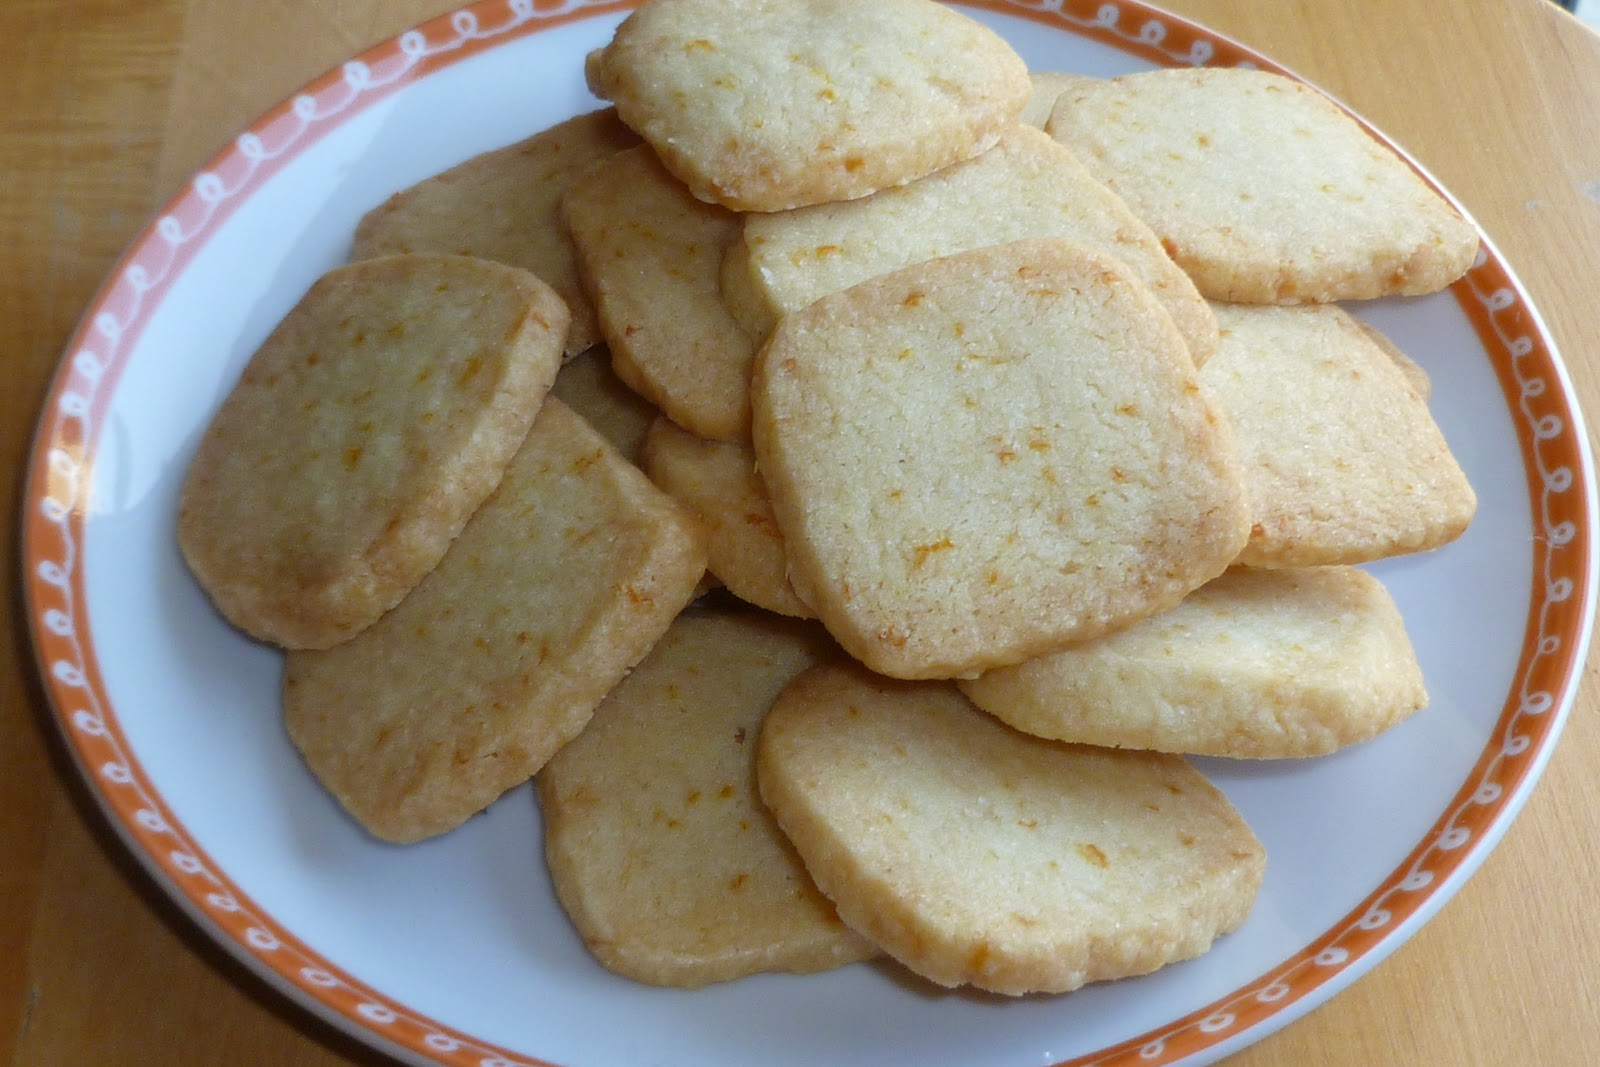 The Pastry Chef's Baking: Lemon Shortbread Cookies